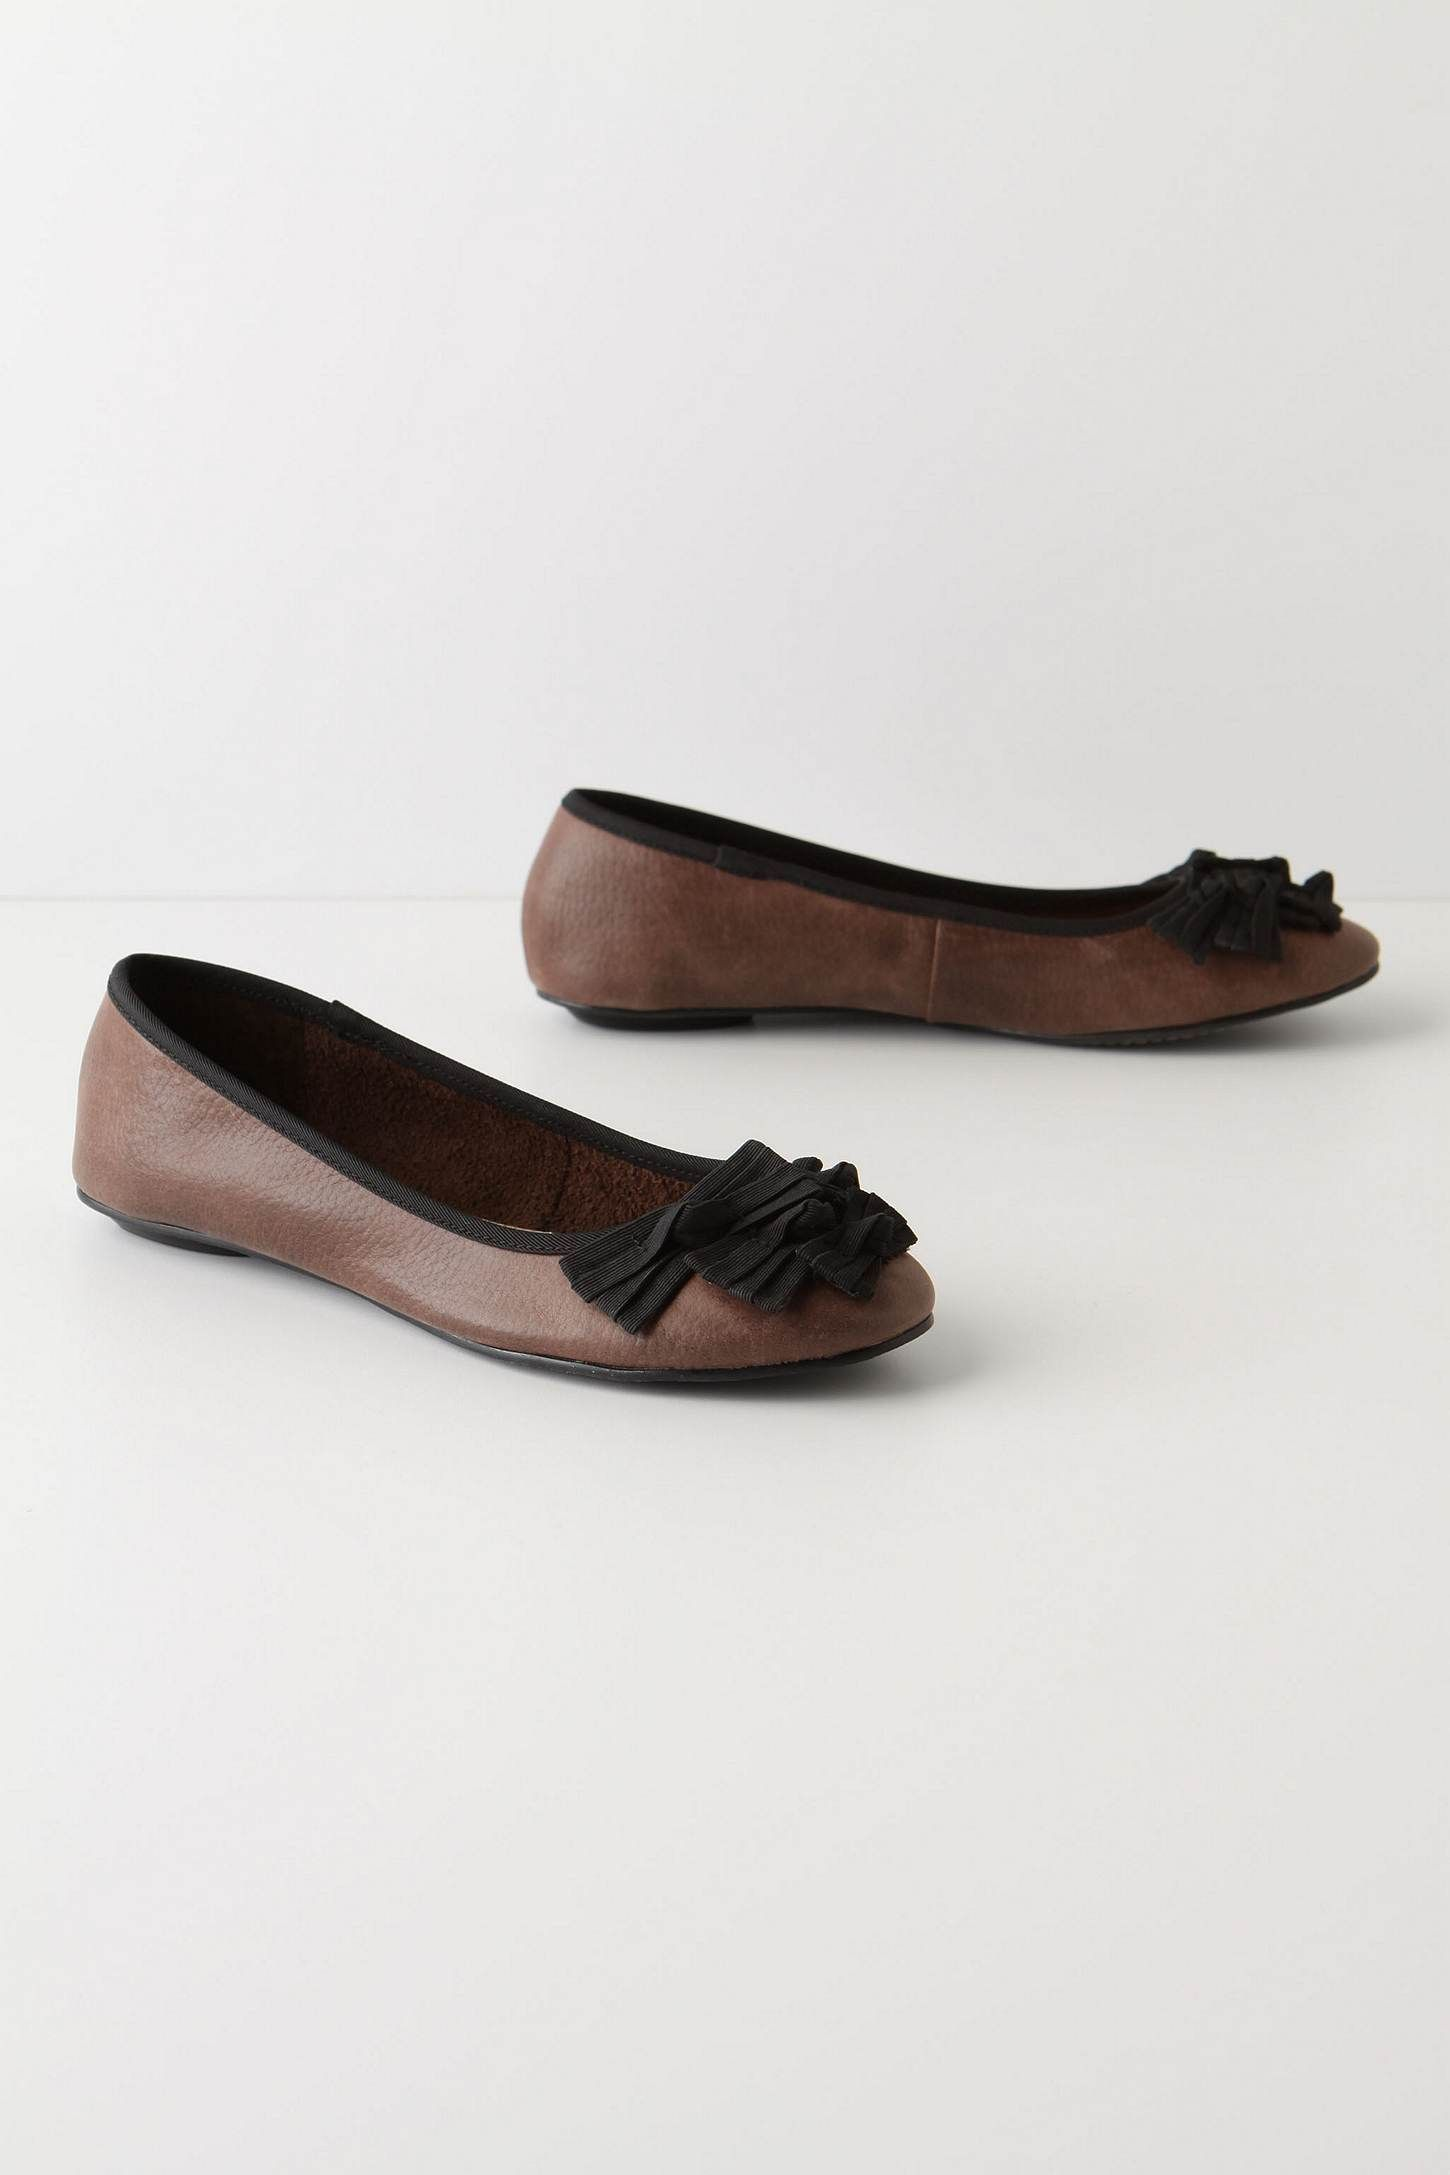 flats | anthropologie